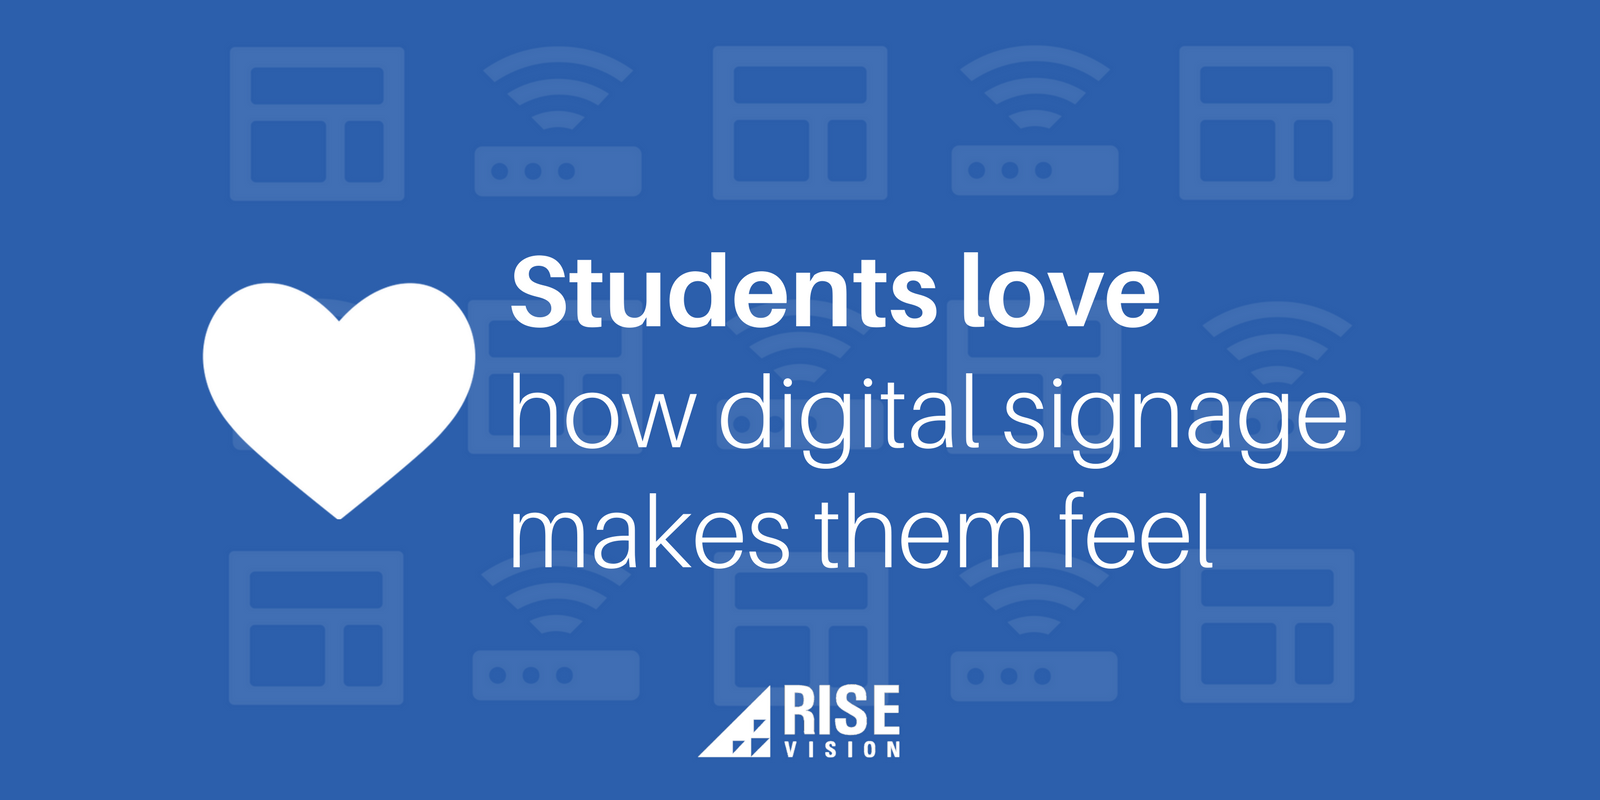 Rise Vision Digital Signage Education Students Love.png